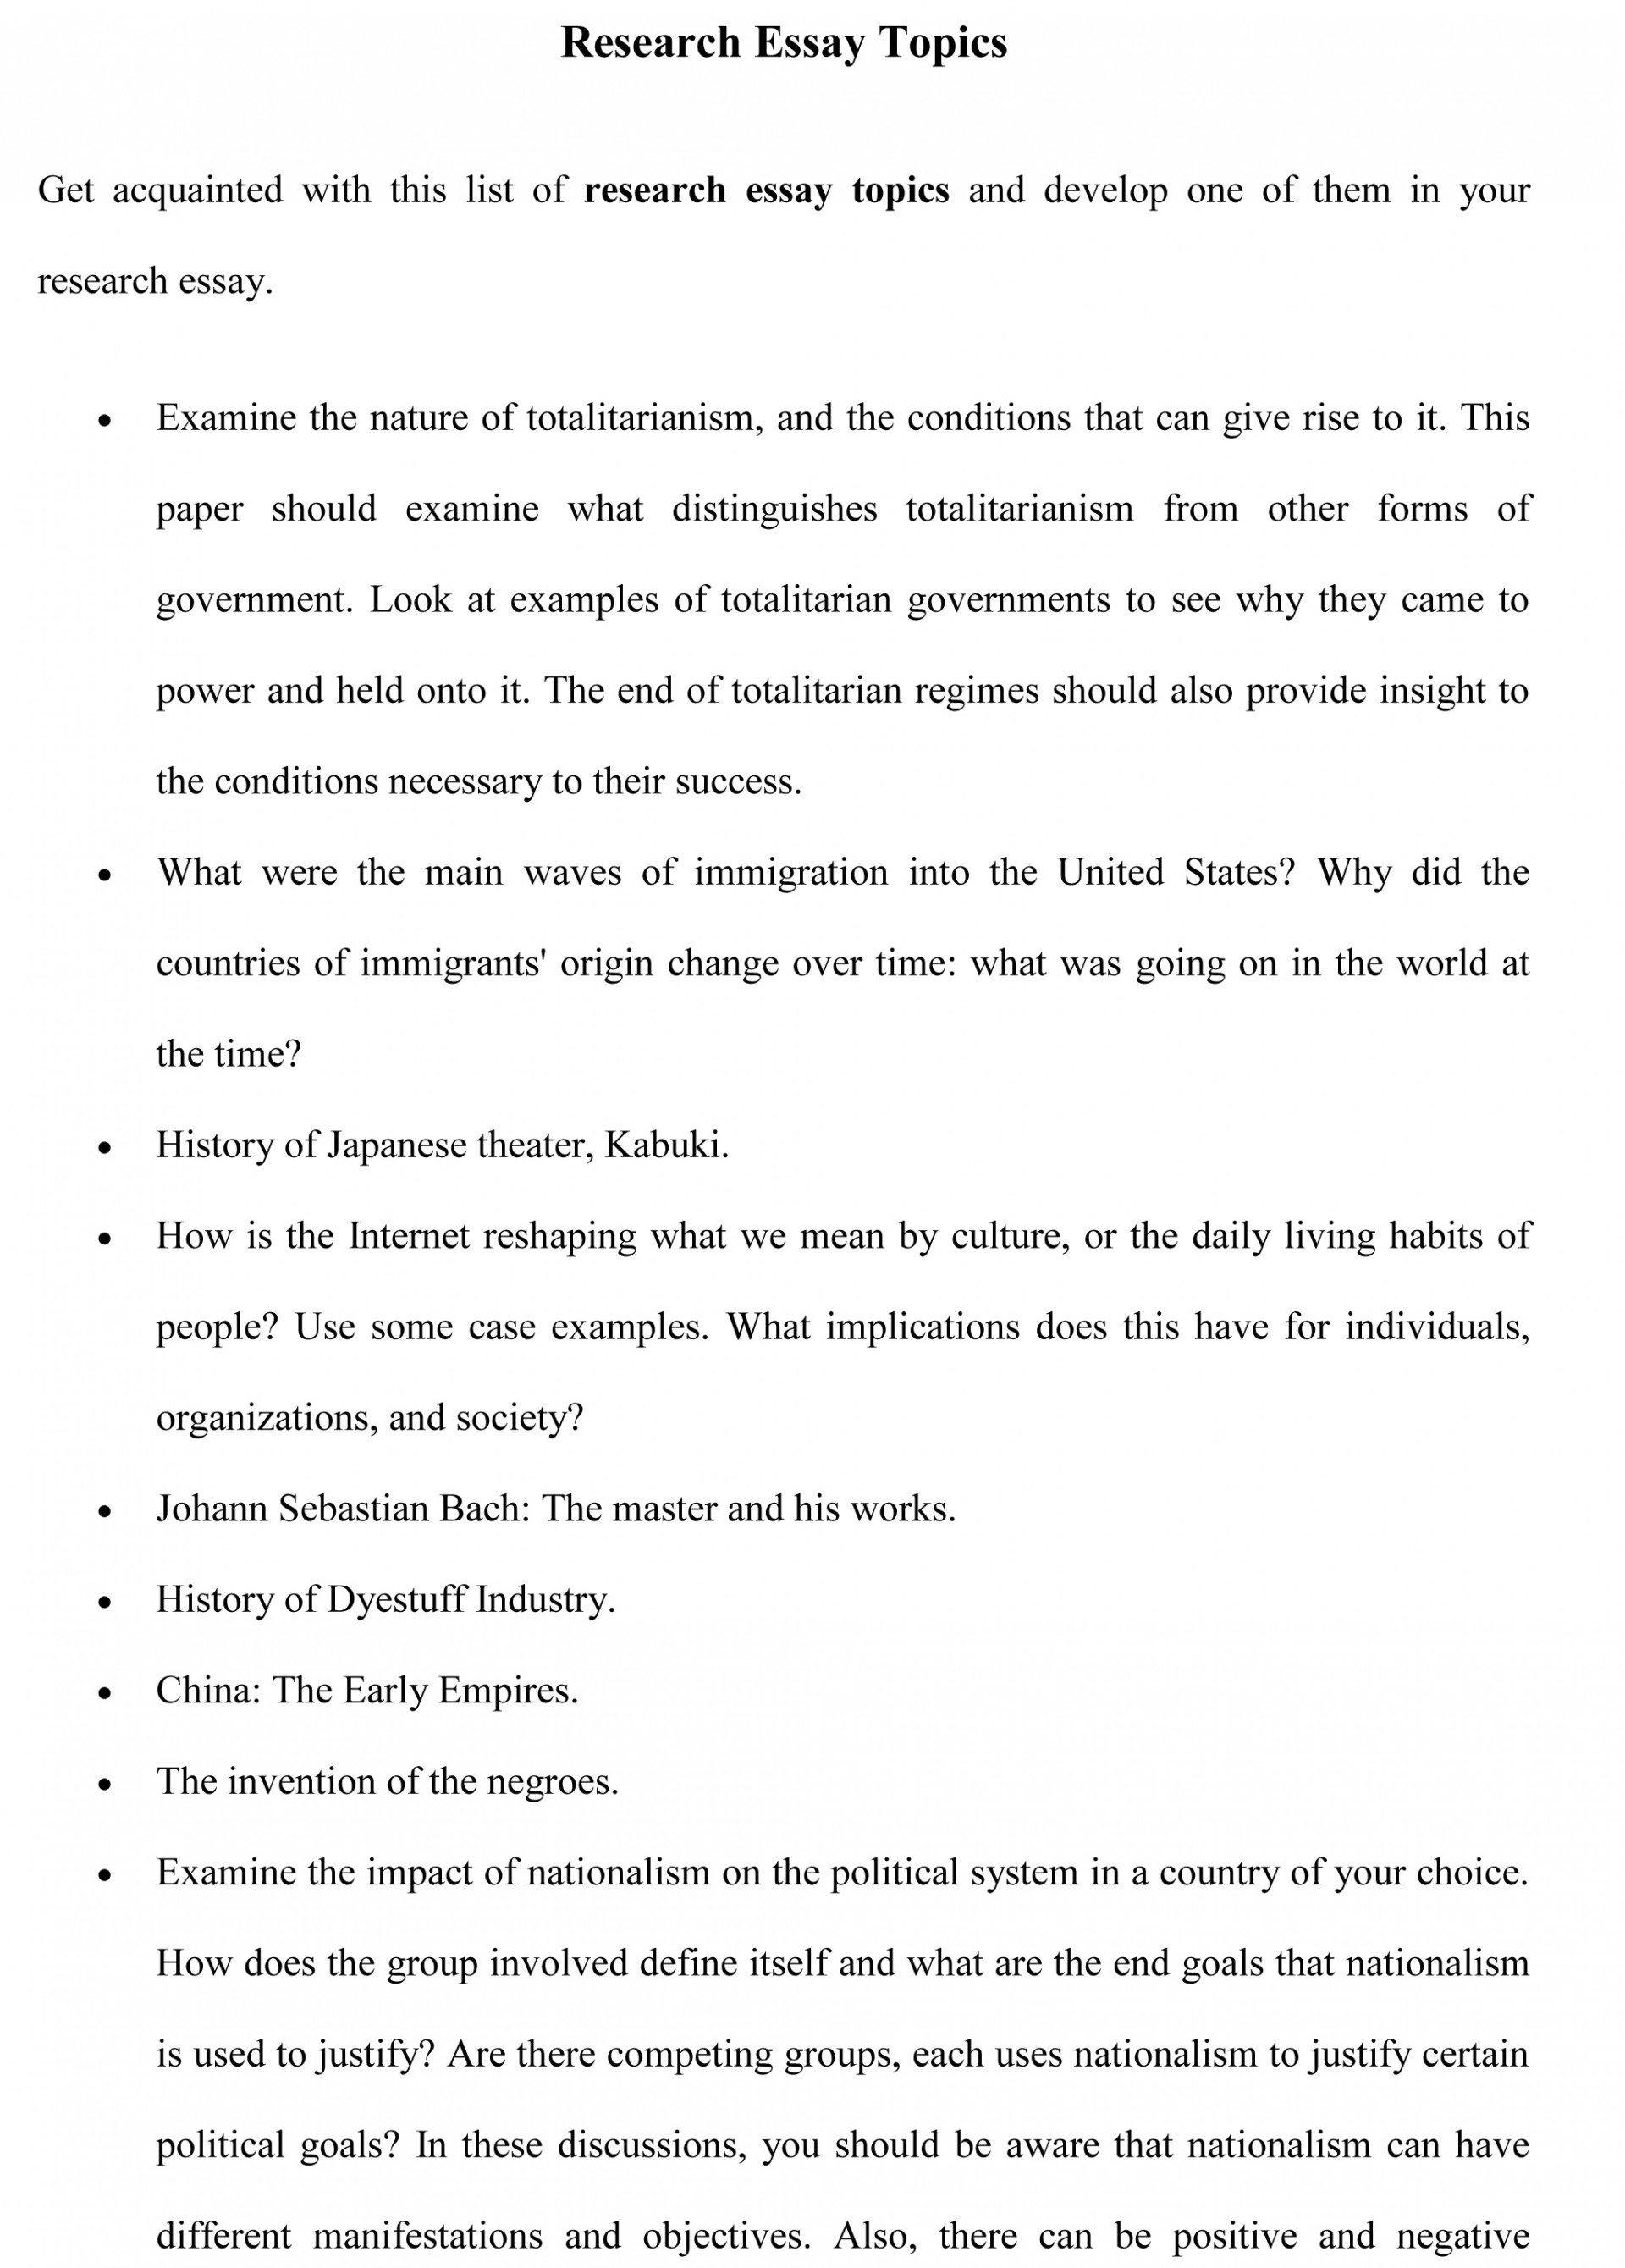 003 Interesting Essay Topics Example Research Amazing Descriptive To Write About For Grade 8 In Urdu Synthesis 1920